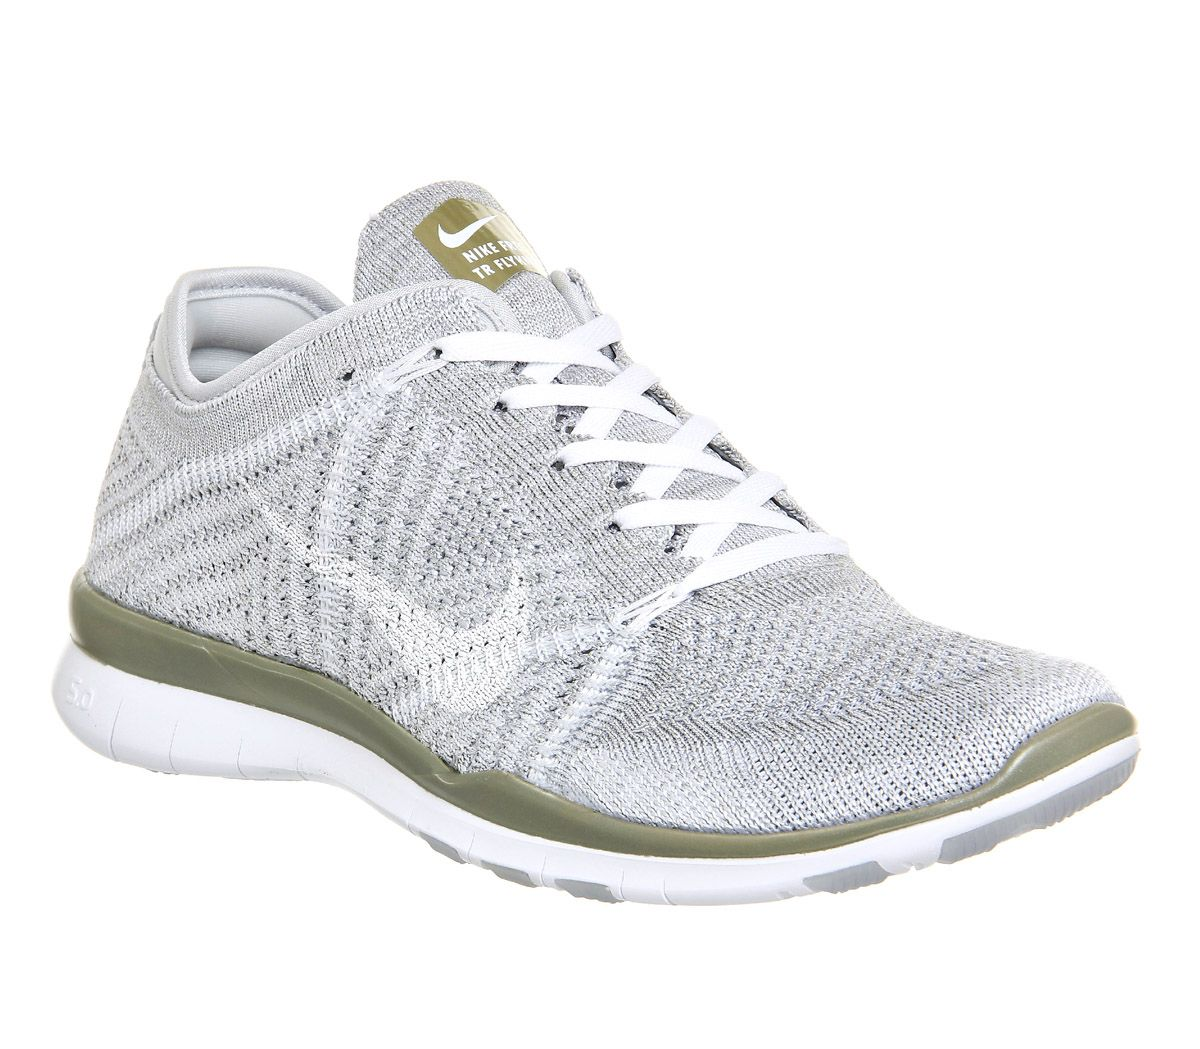 Pure Platinum Gold Nike Free Tr Flyknit From Office Co Uk